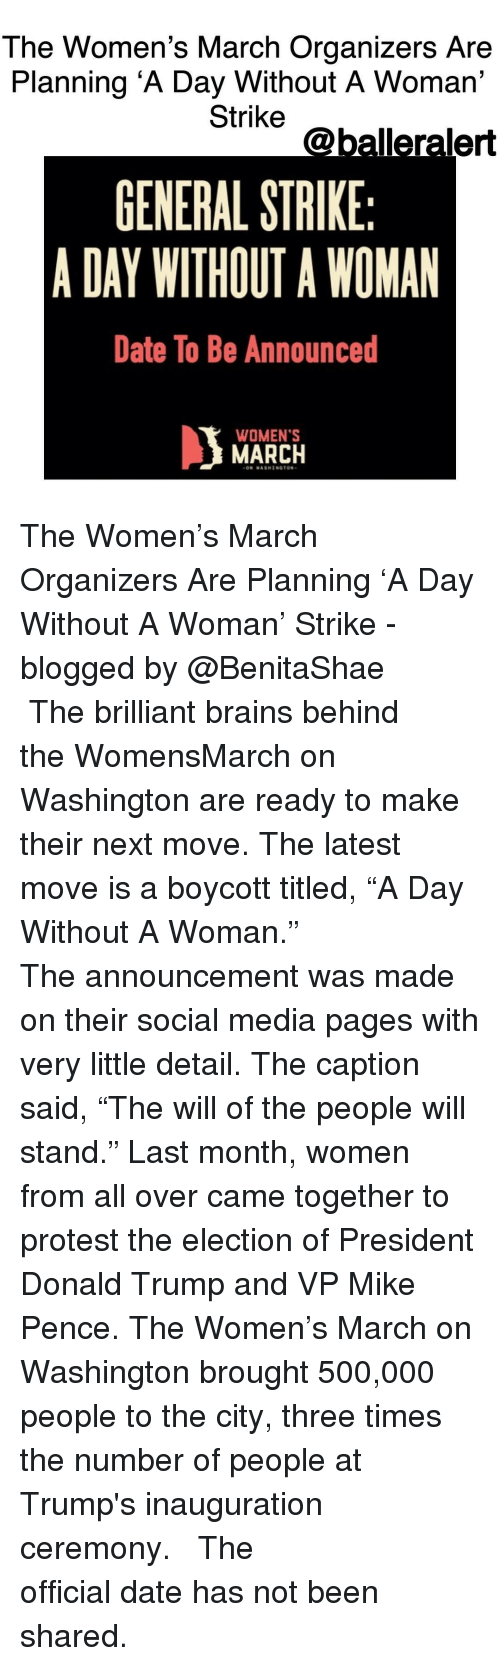 """Trump Inauguration: The Women's March Organizers Are  Planning A Day Without A Woman'  Strike  @balleralert  GENERAL STRIKE  A DAY WITHOUT A WOMAN  Date To Be Announced  WOMEN'S  MARCH  ON WASHINGTON The Women's March Organizers Are Planning 'A Day Without A Woman' Strike -blogged by @BenitaShae ⠀⠀⠀⠀⠀⠀⠀⠀⠀ ⠀⠀⠀⠀⠀⠀⠀⠀⠀ The brilliant brains behind the WomensMarch on Washington are ready to make their next move. The latest move is a boycott titled, """"A Day Without A Woman."""" ⠀⠀⠀⠀⠀⠀⠀⠀⠀ ⠀⠀⠀⠀⠀⠀⠀⠀⠀ The announcement was made on their social media pages with very little detail. The caption said, """"The will of the people will stand."""" Last month, women from all over came together to protest the election of President Donald Trump and VP Mike Pence. The Women's March on Washington brought 500,000 people to the city, three times the number of people at Trump's inauguration ceremony. ⠀⠀⠀⠀⠀⠀⠀⠀⠀ ⠀⠀⠀⠀⠀⠀⠀⠀⠀ The official date has not been shared."""